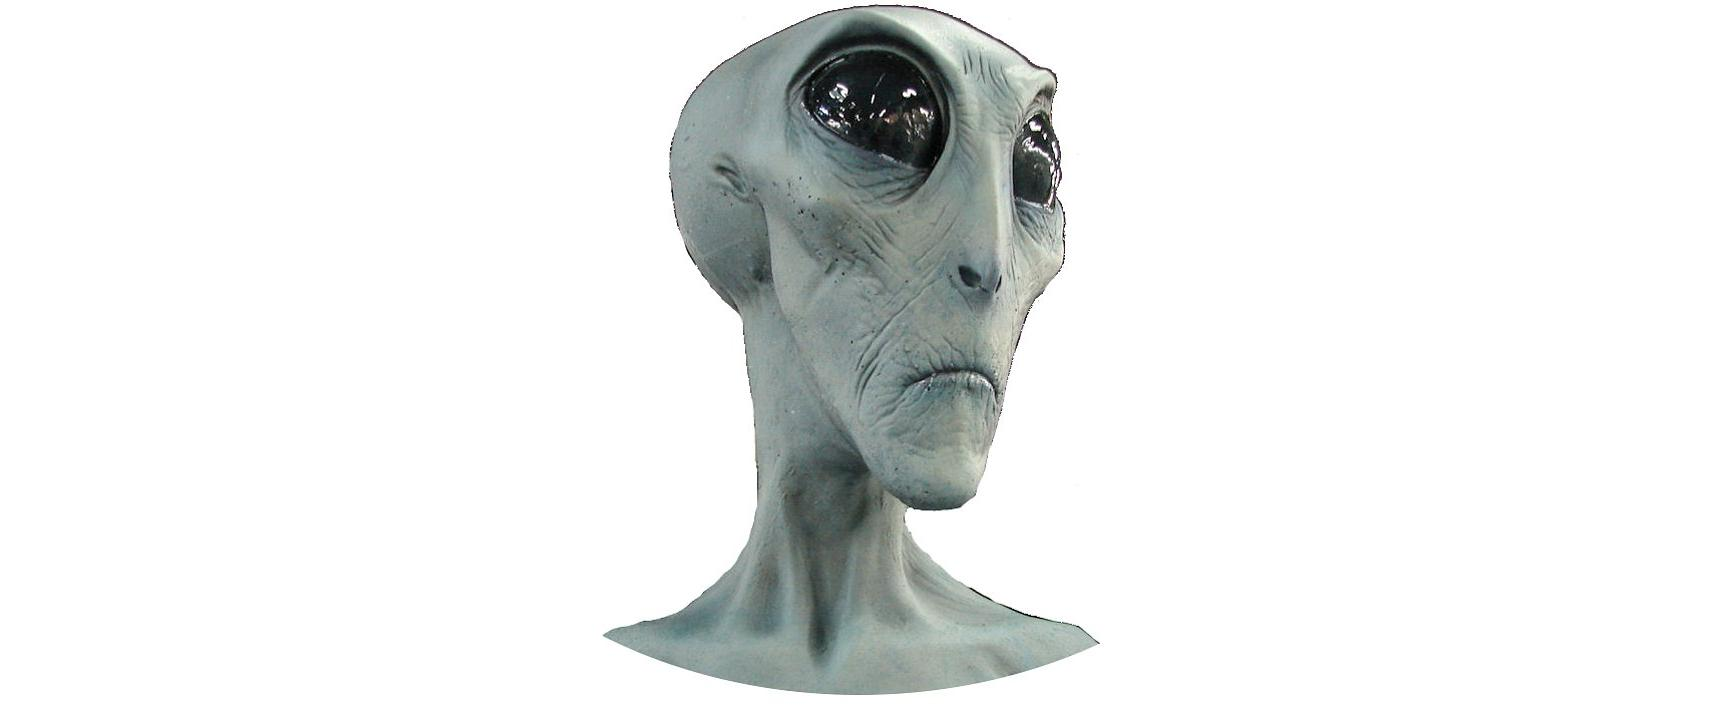 100% real space alien from Roswell International UFO Museum & Research Center